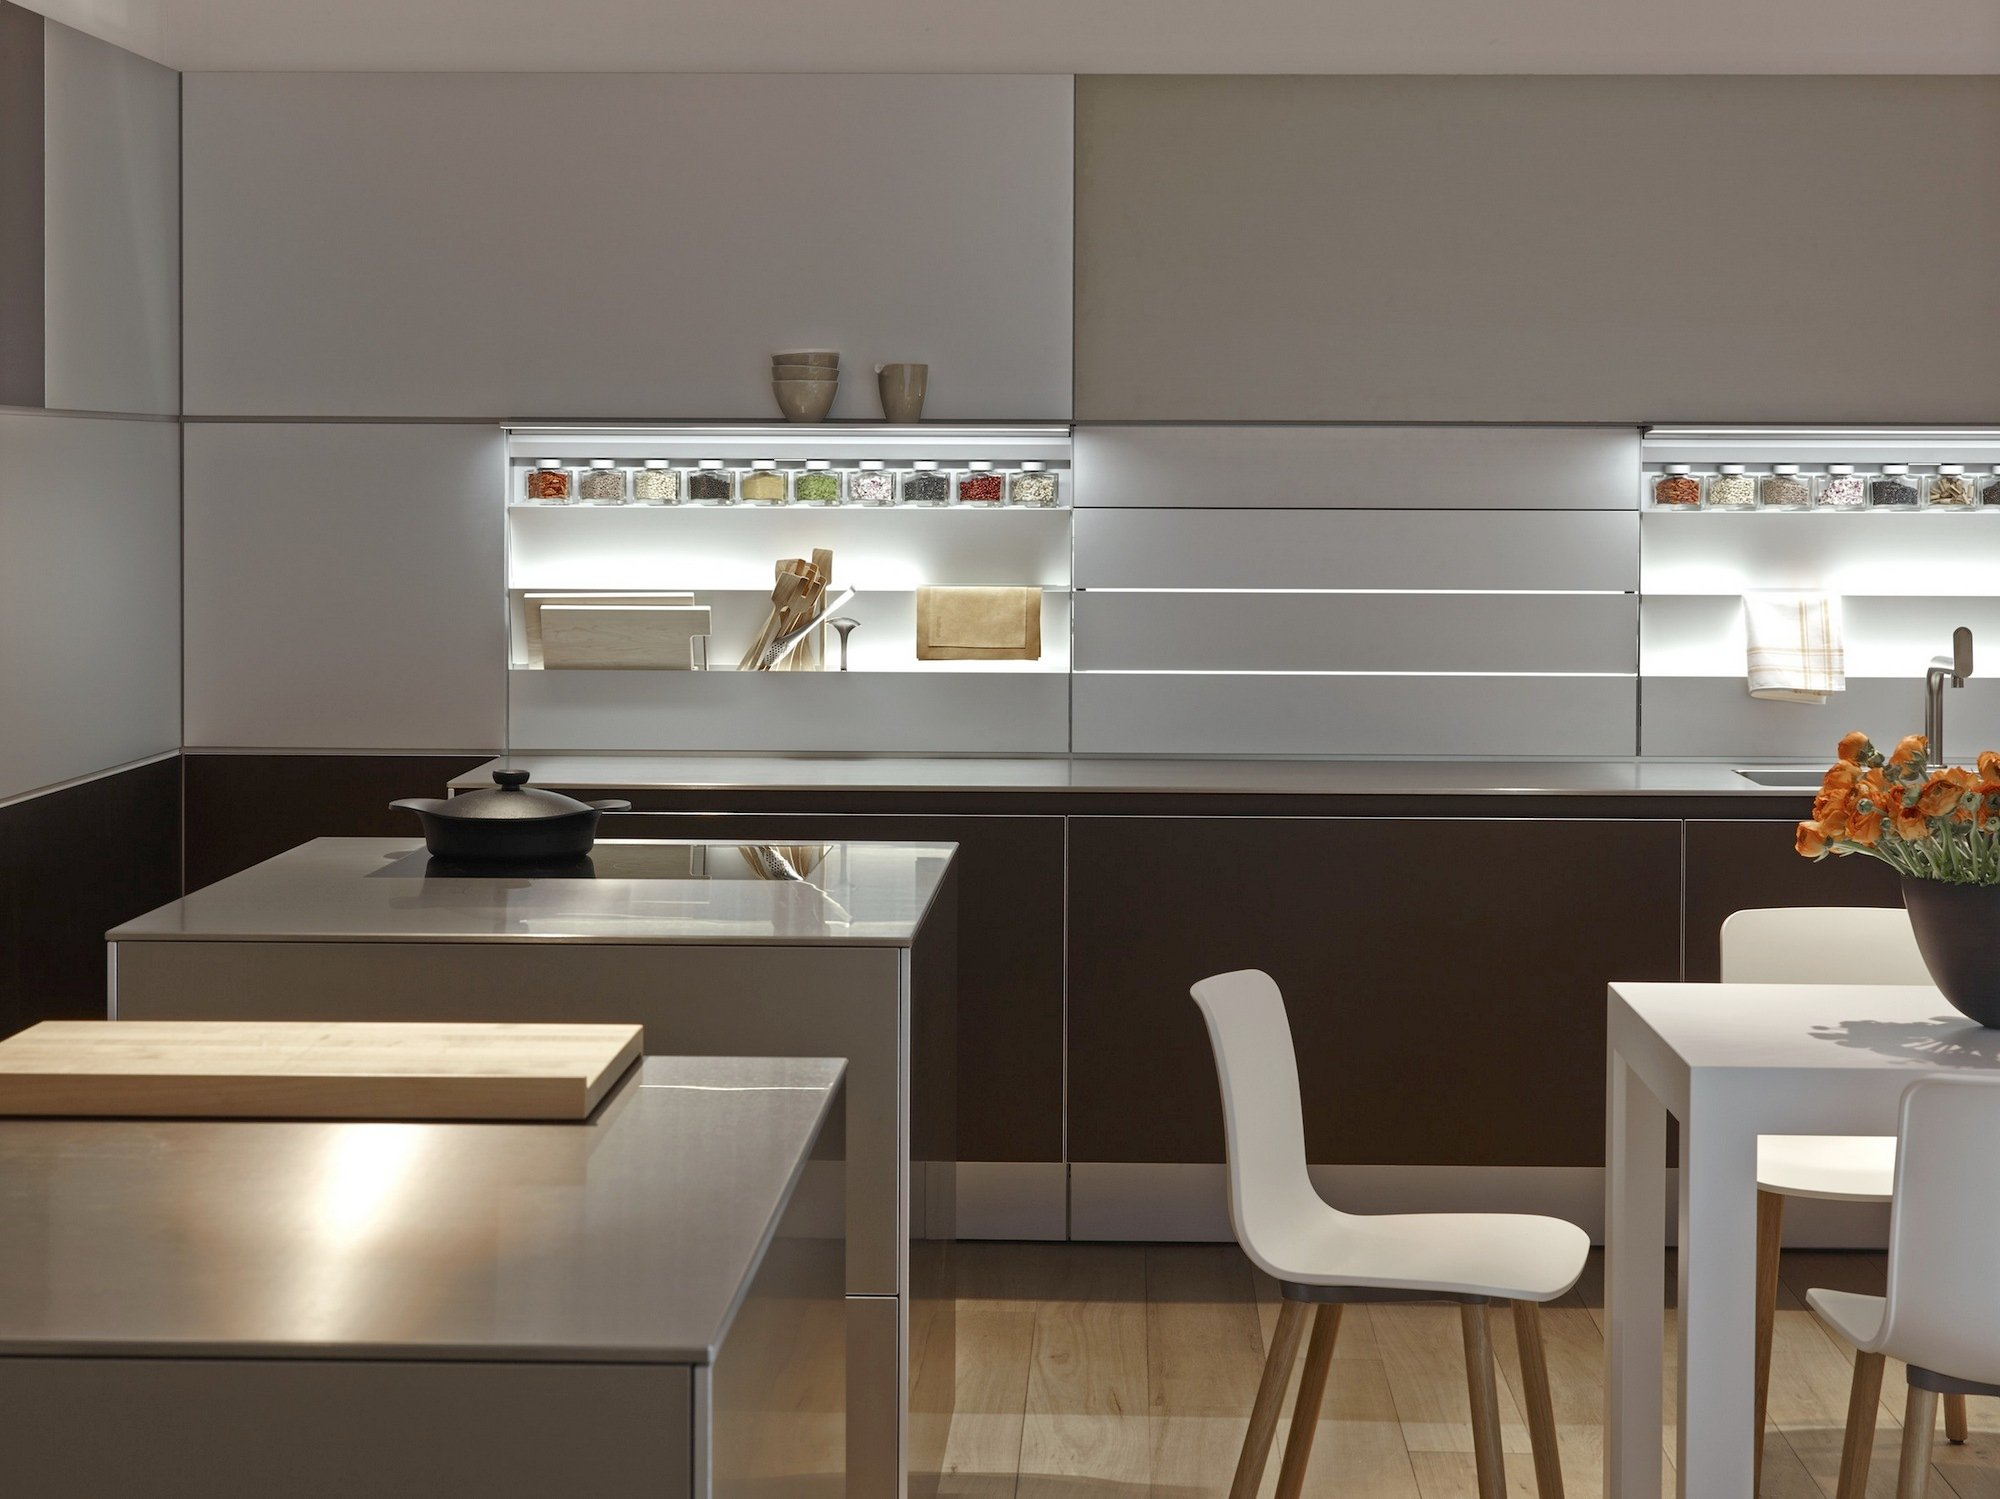 b3 aluminium kitchen by bulthaup. Black Bedroom Furniture Sets. Home Design Ideas